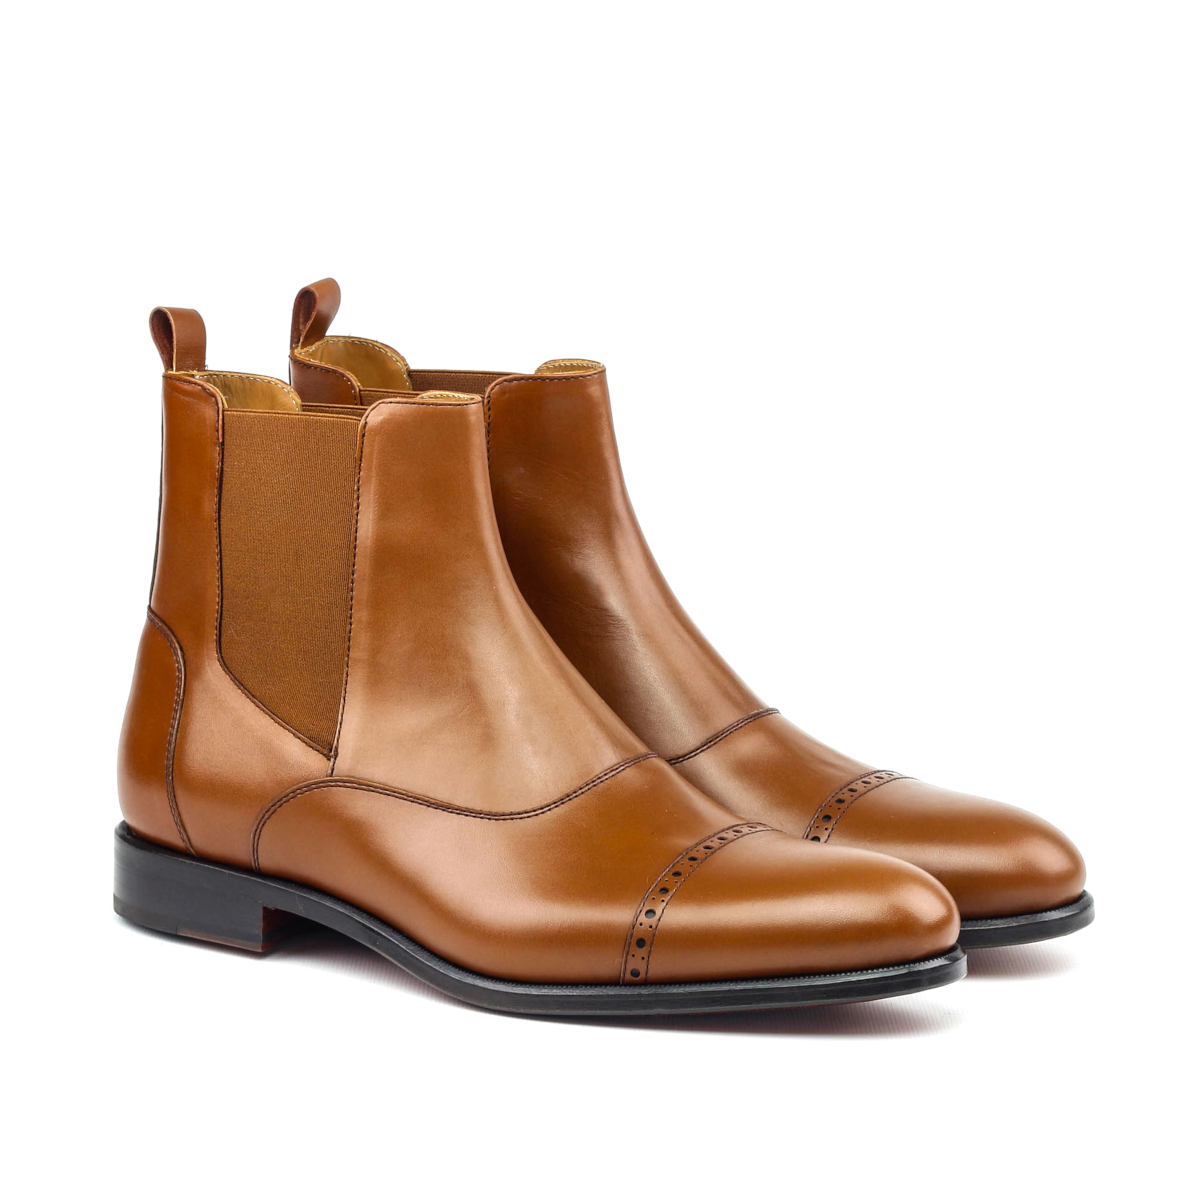 Chelsea boot hand polished cognac